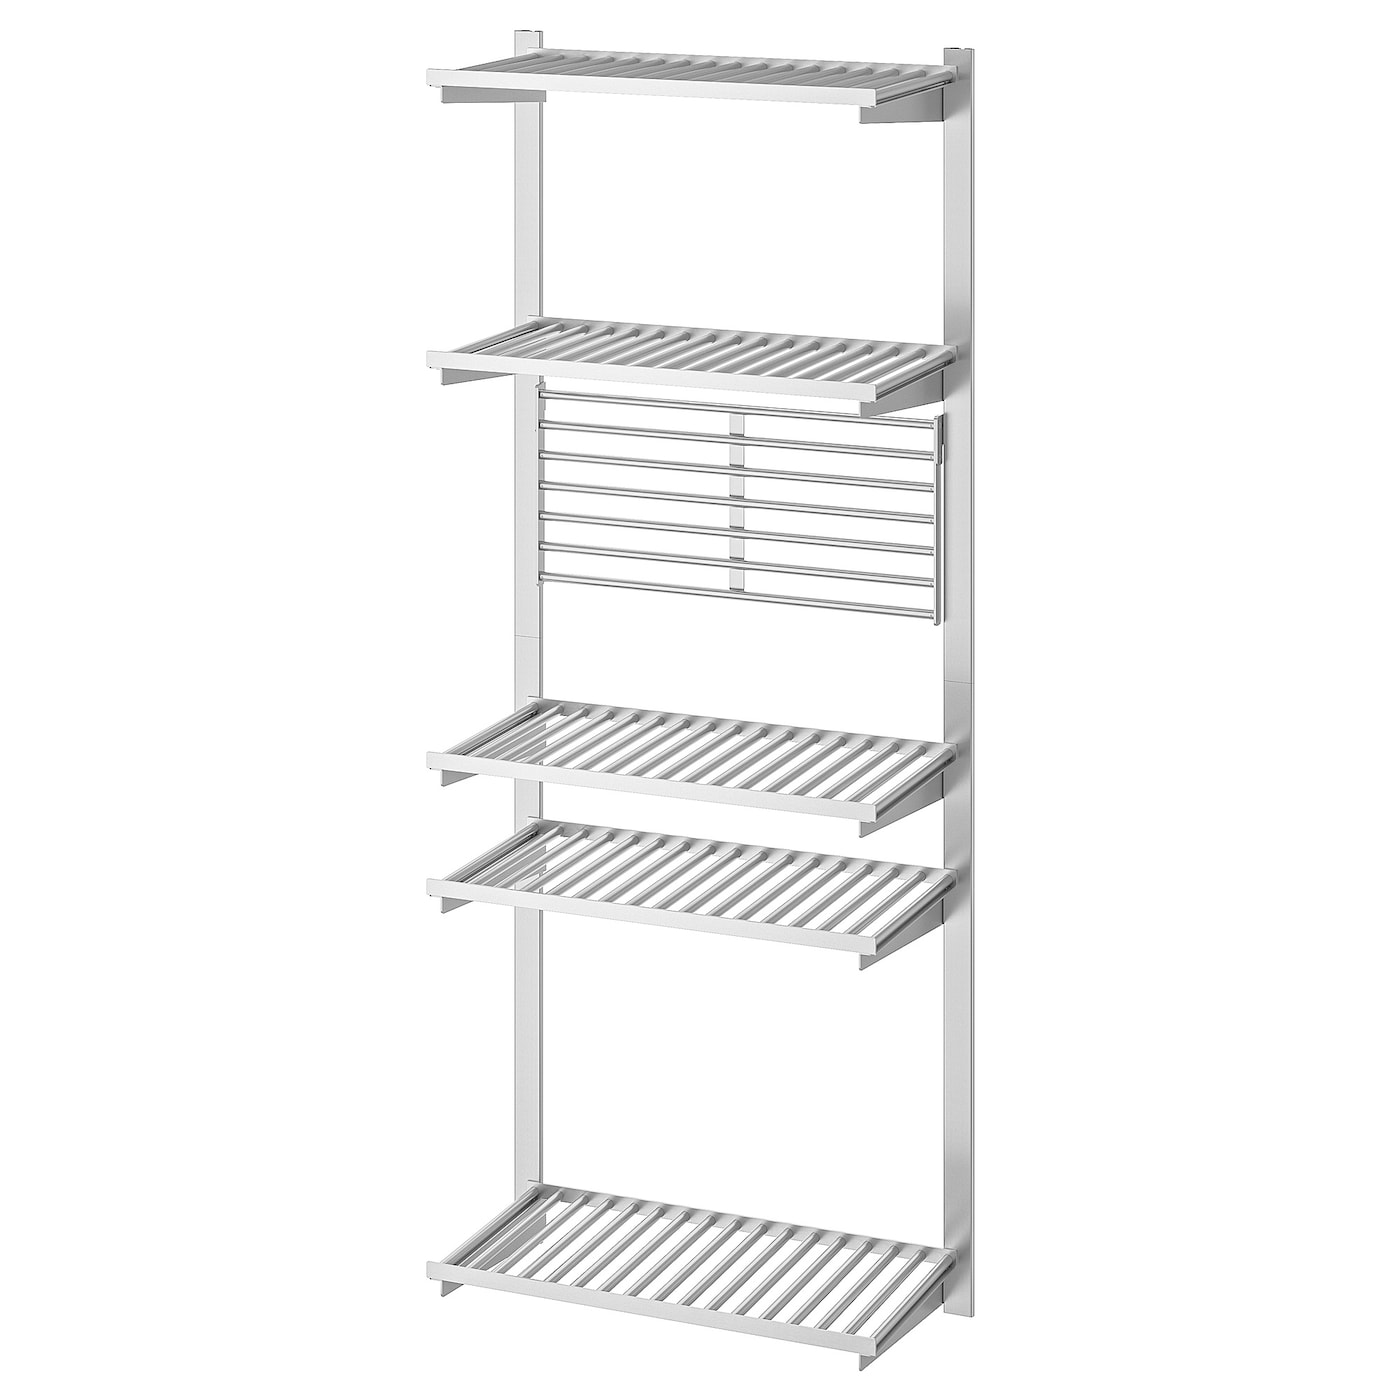 IKEA KUNGSFORS suspension rail with shelf/wll grid Gives you extra storage in your kitchen.